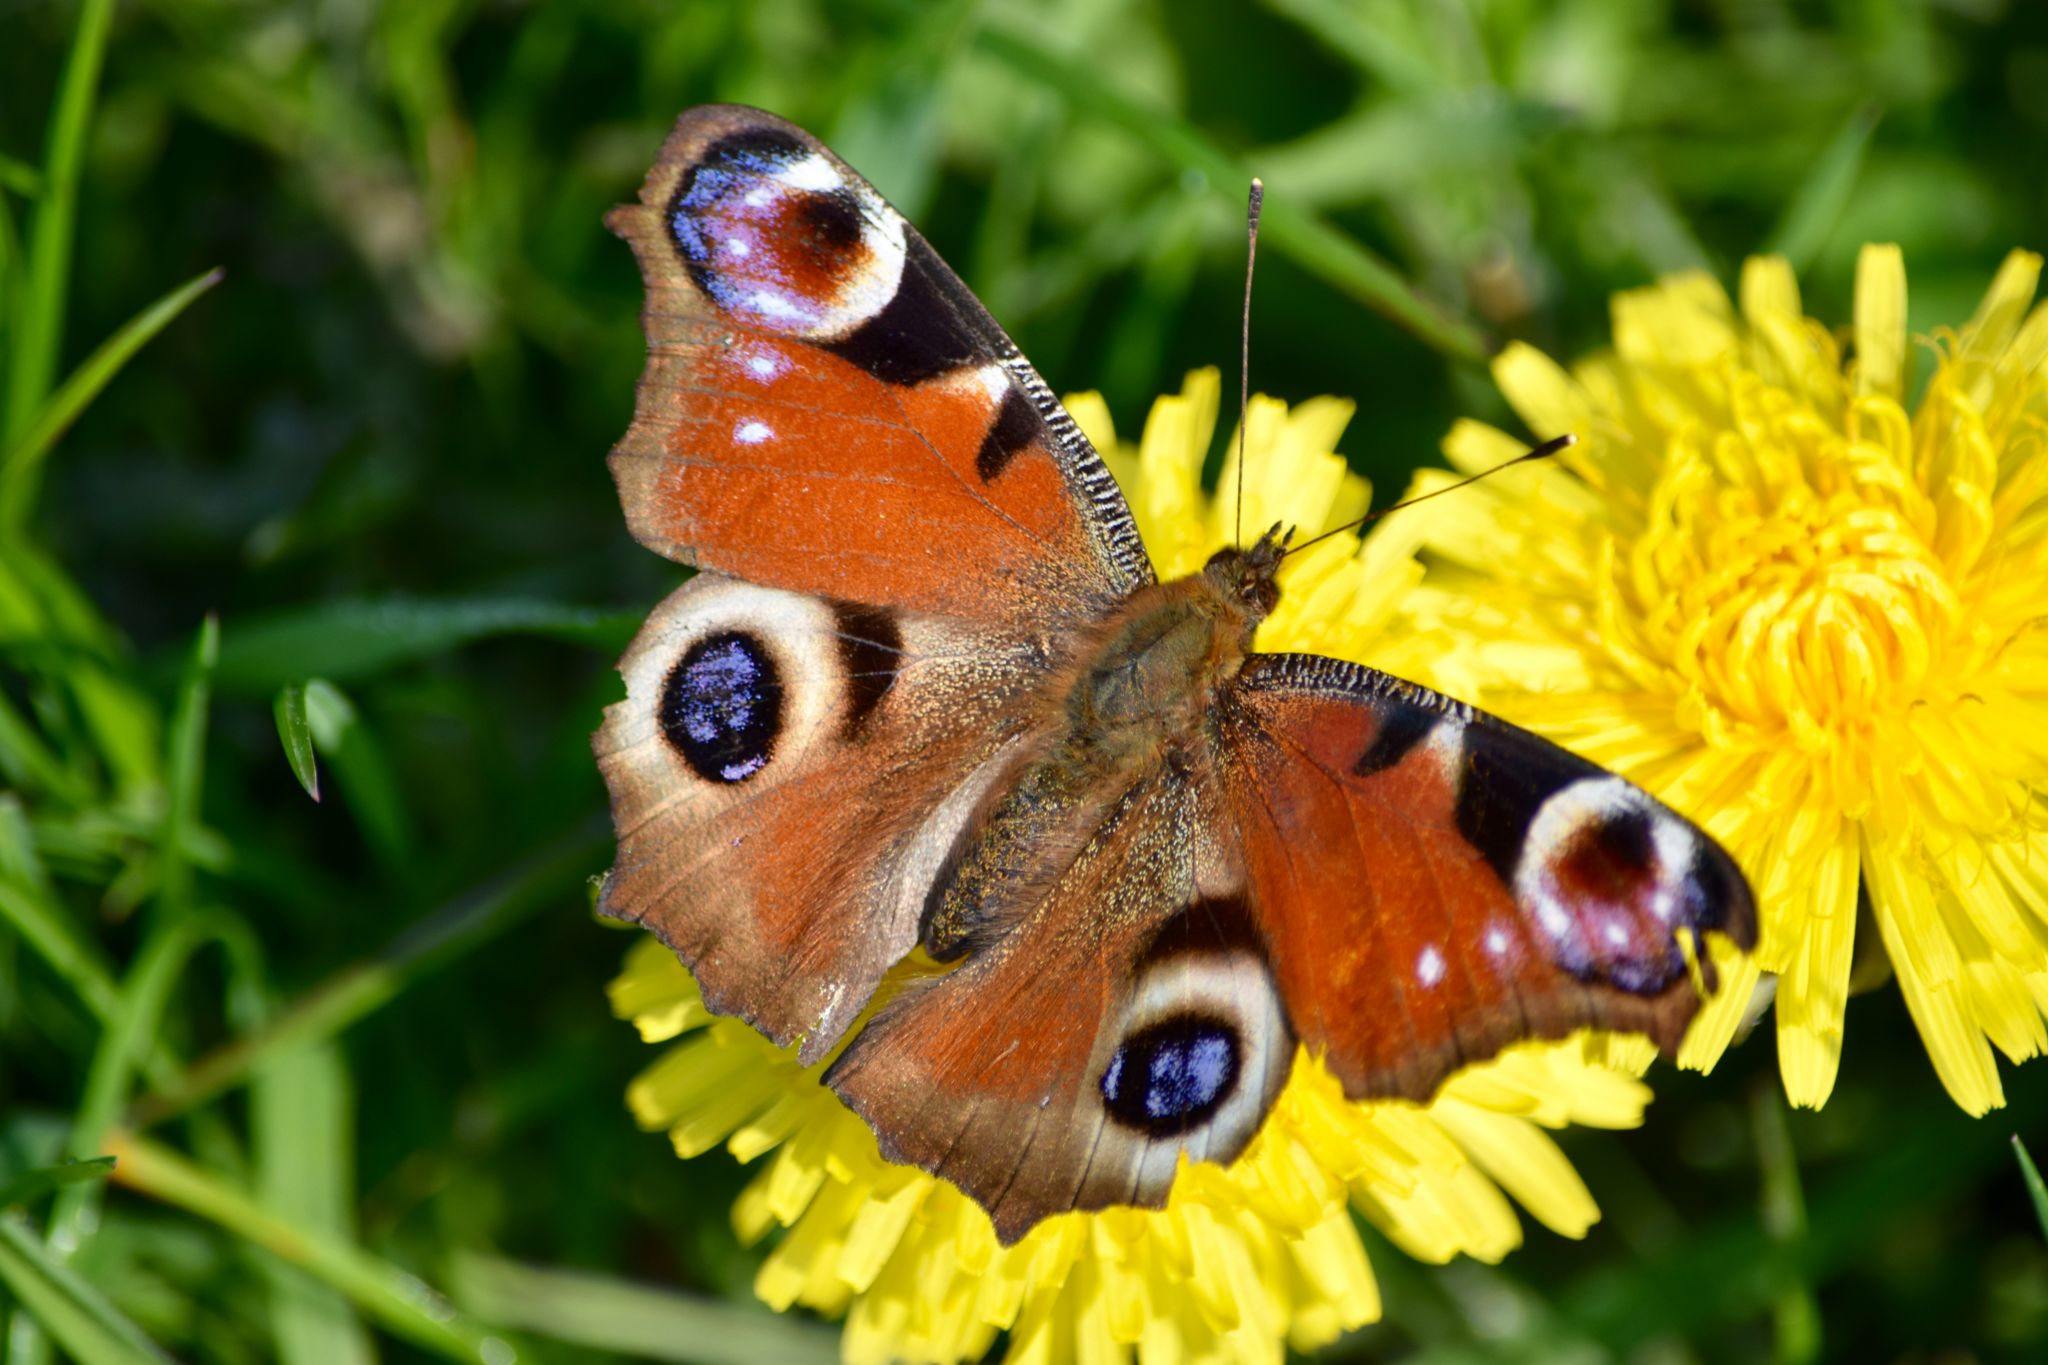 A Peacock Butterfly on a yellow flower